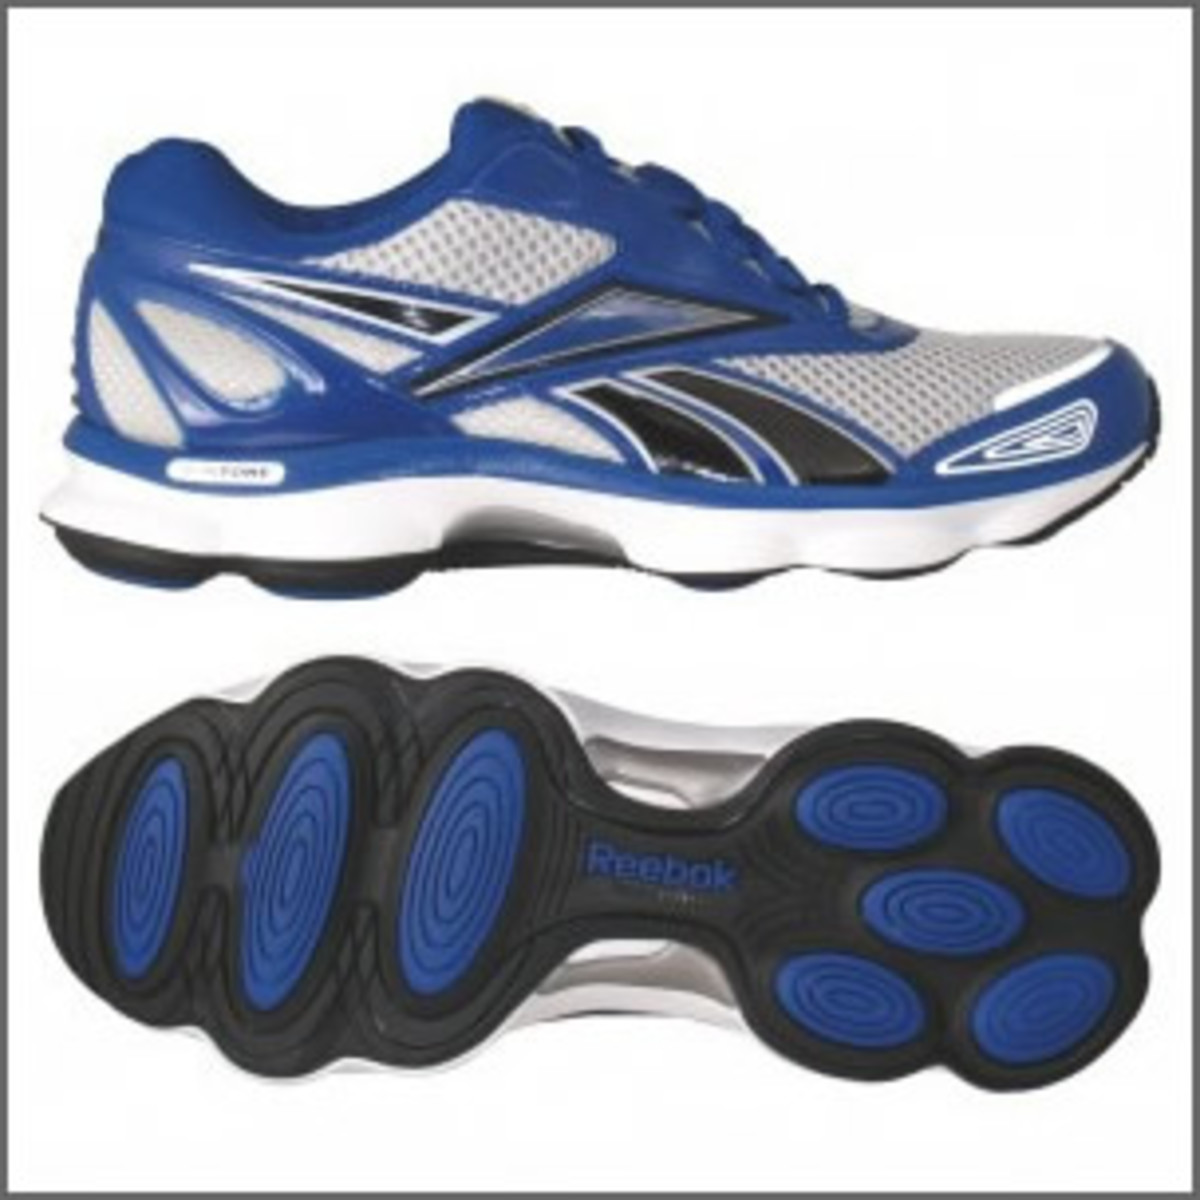 Reebok RunTone trainers - Great toning shoes for running.